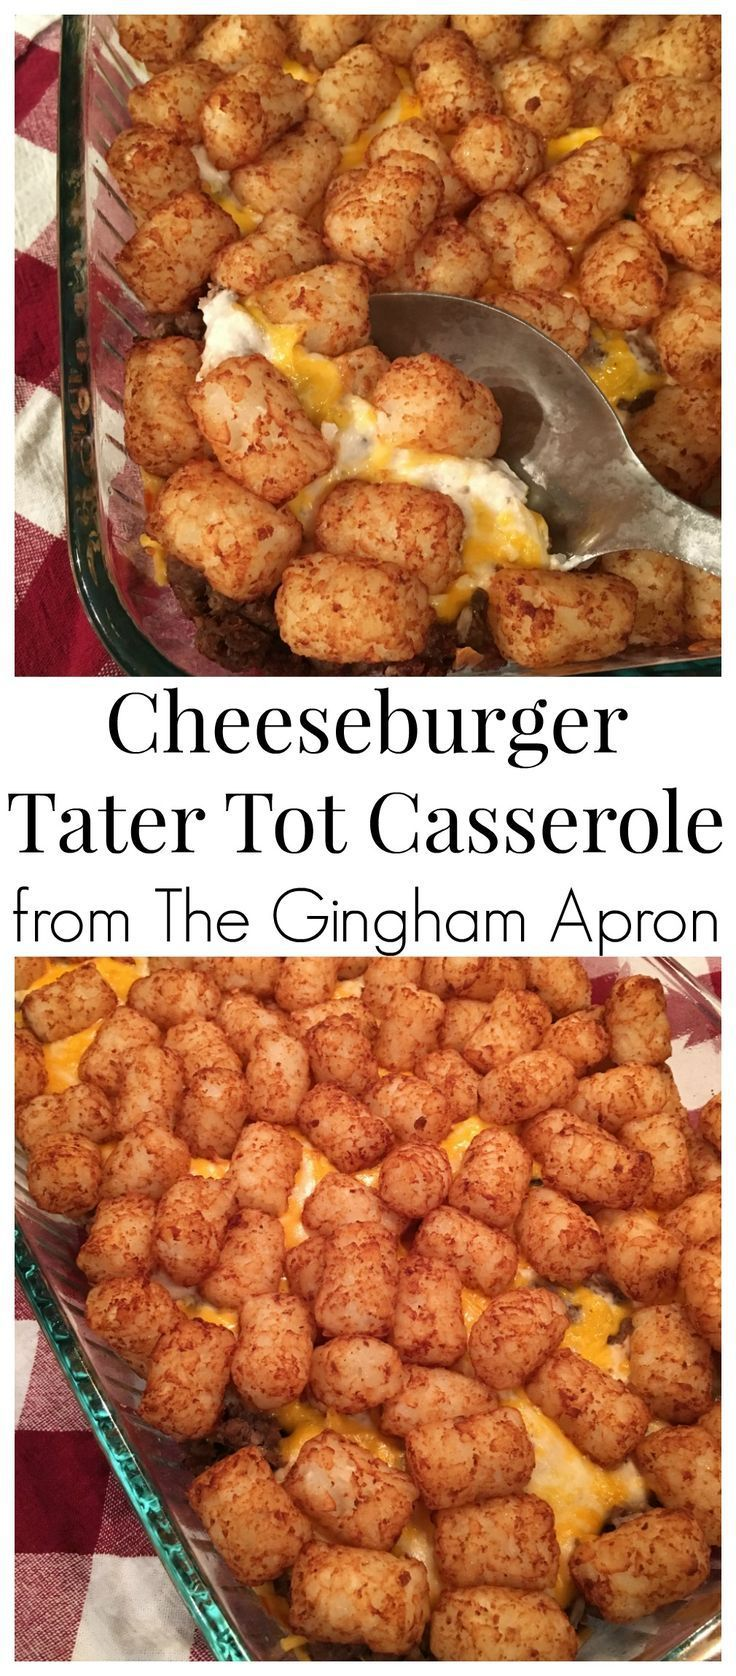 cheeseburger tater tot casserole | recipe | easy dinners | pinterest